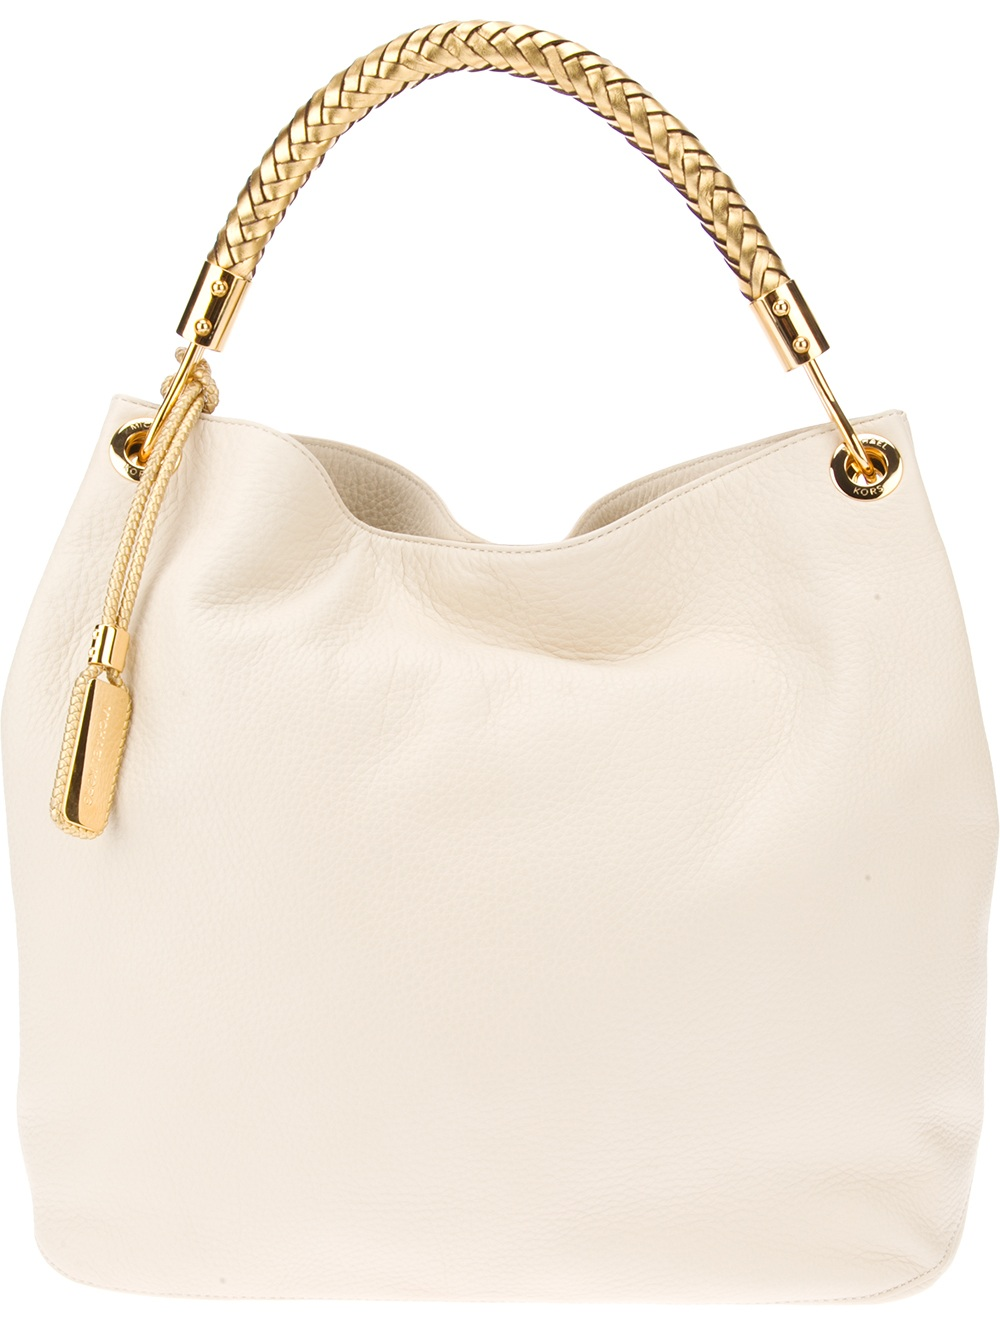 Michael Kors Braided Handle Tote In Beige Cream Lyst